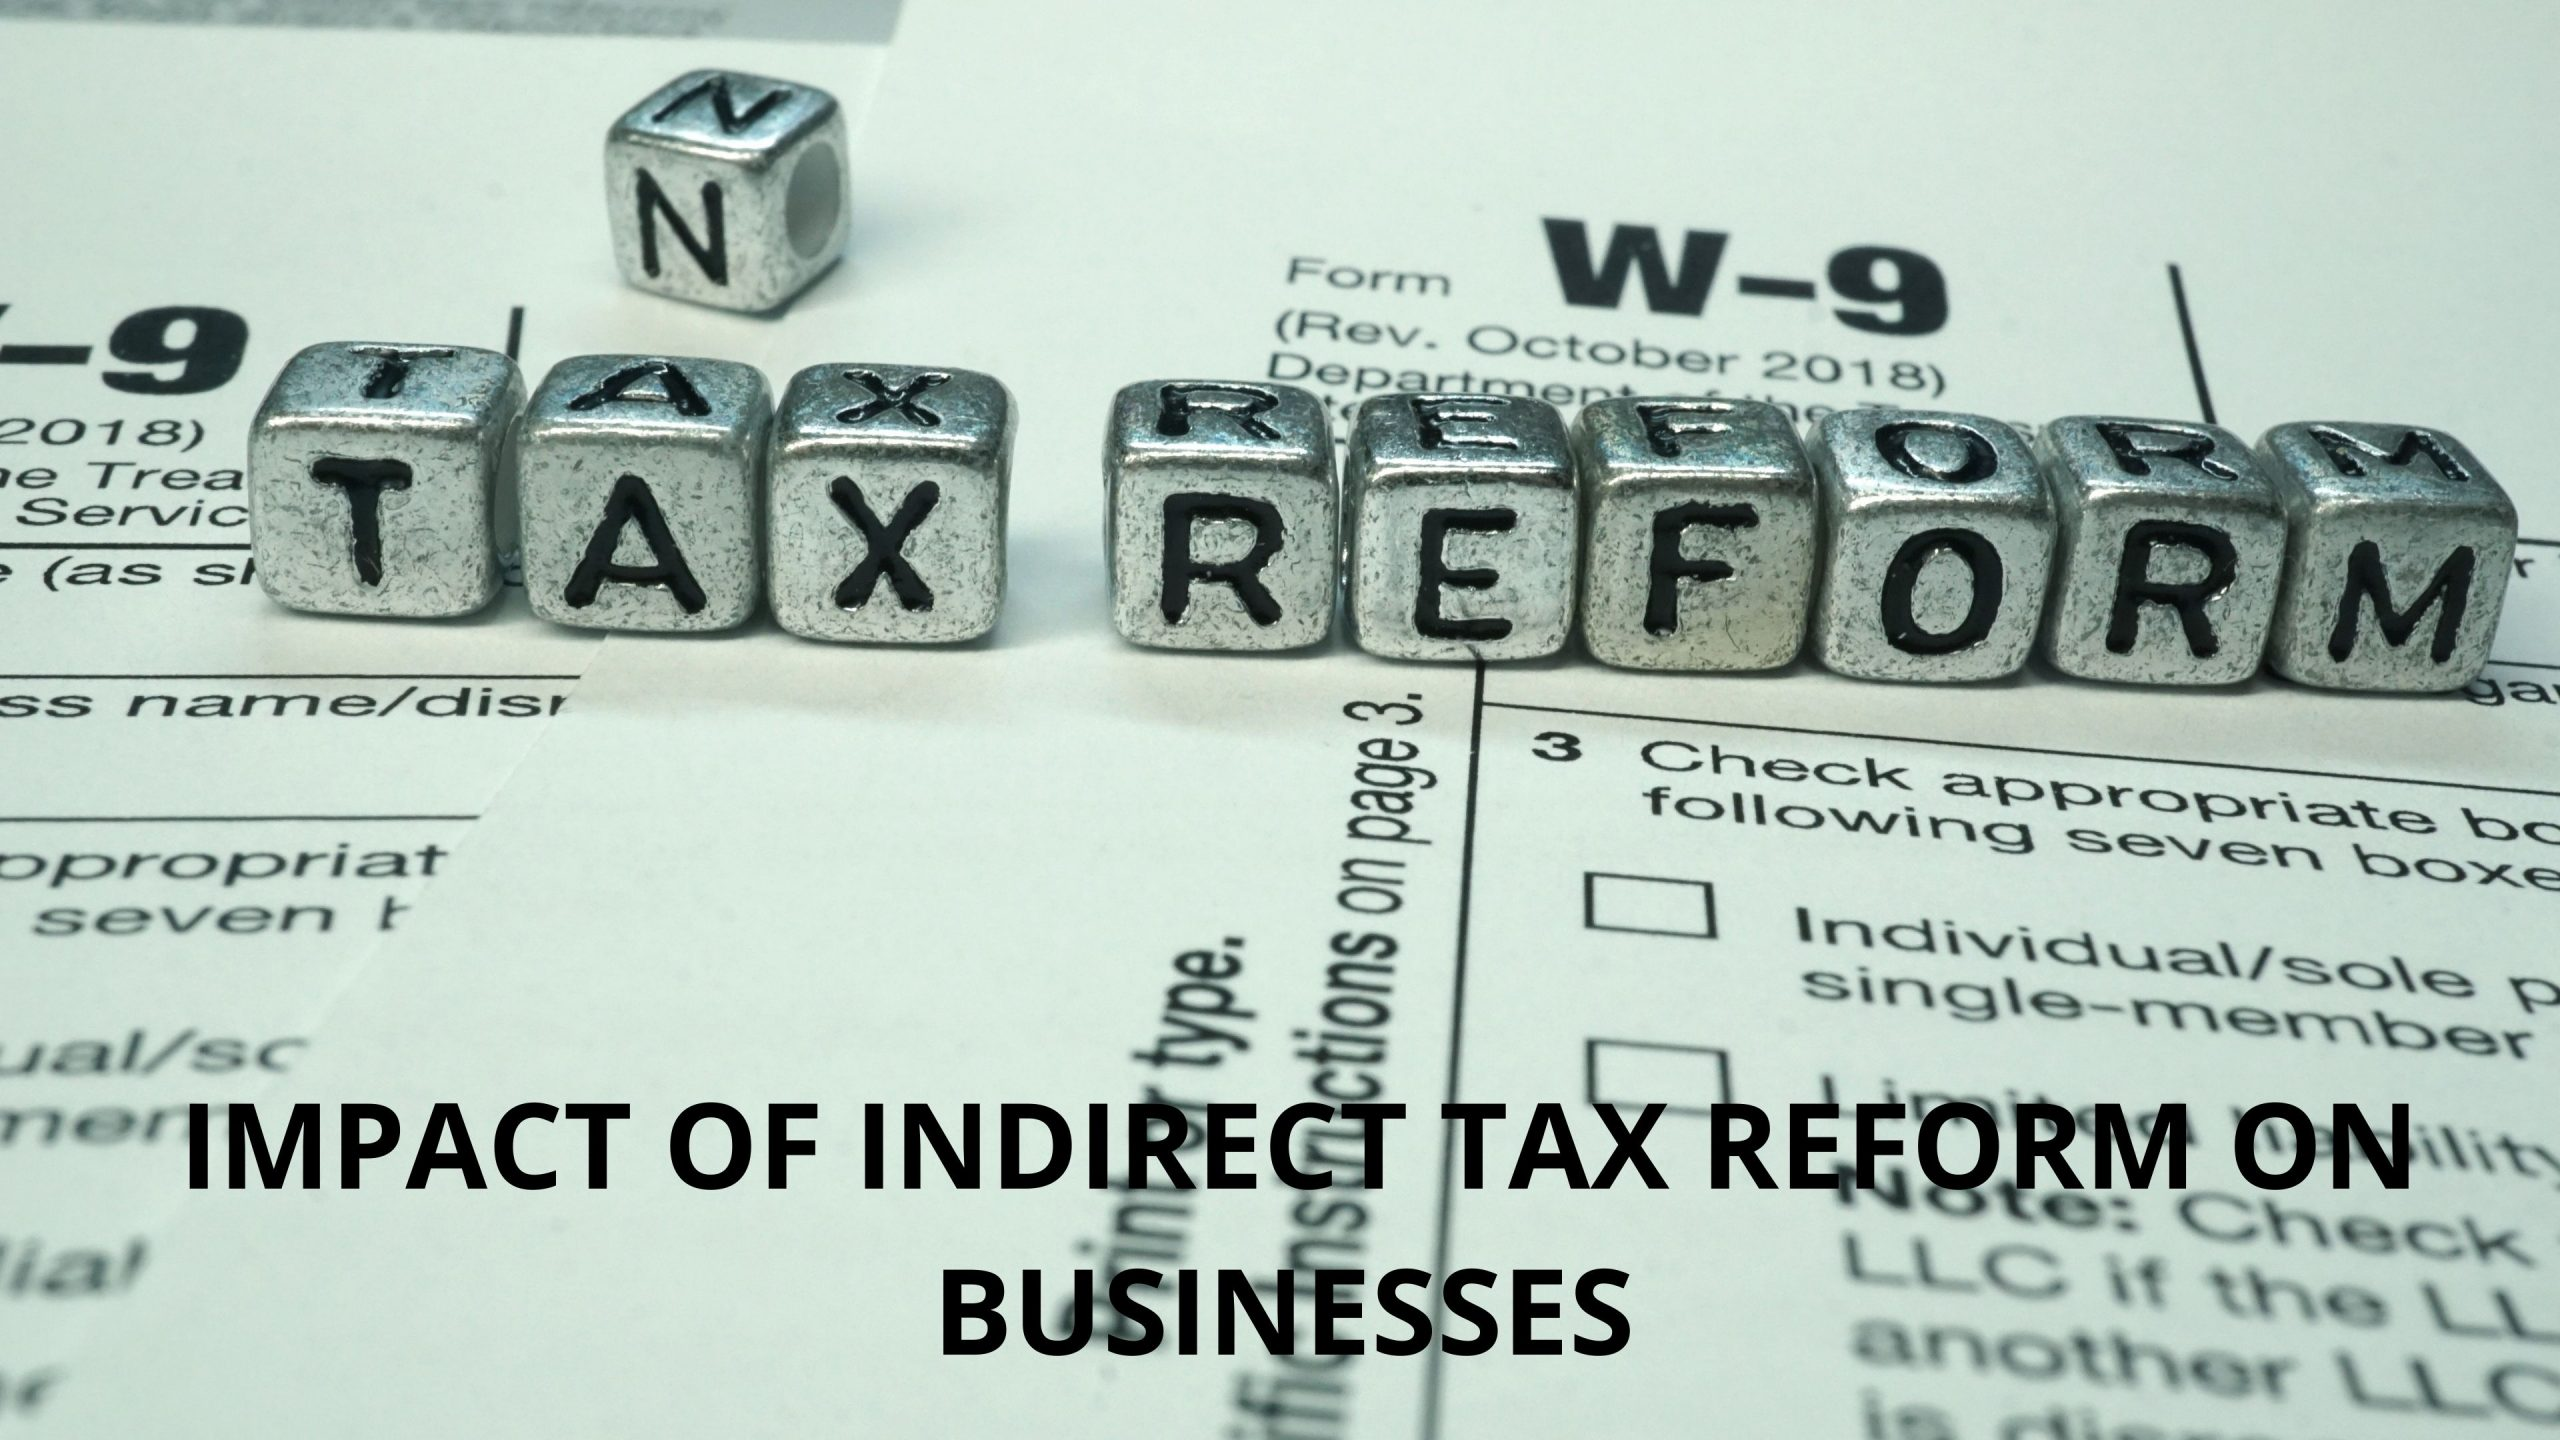 IMPACT OF INDIRECT TAX REFORM ON BUSINESSES